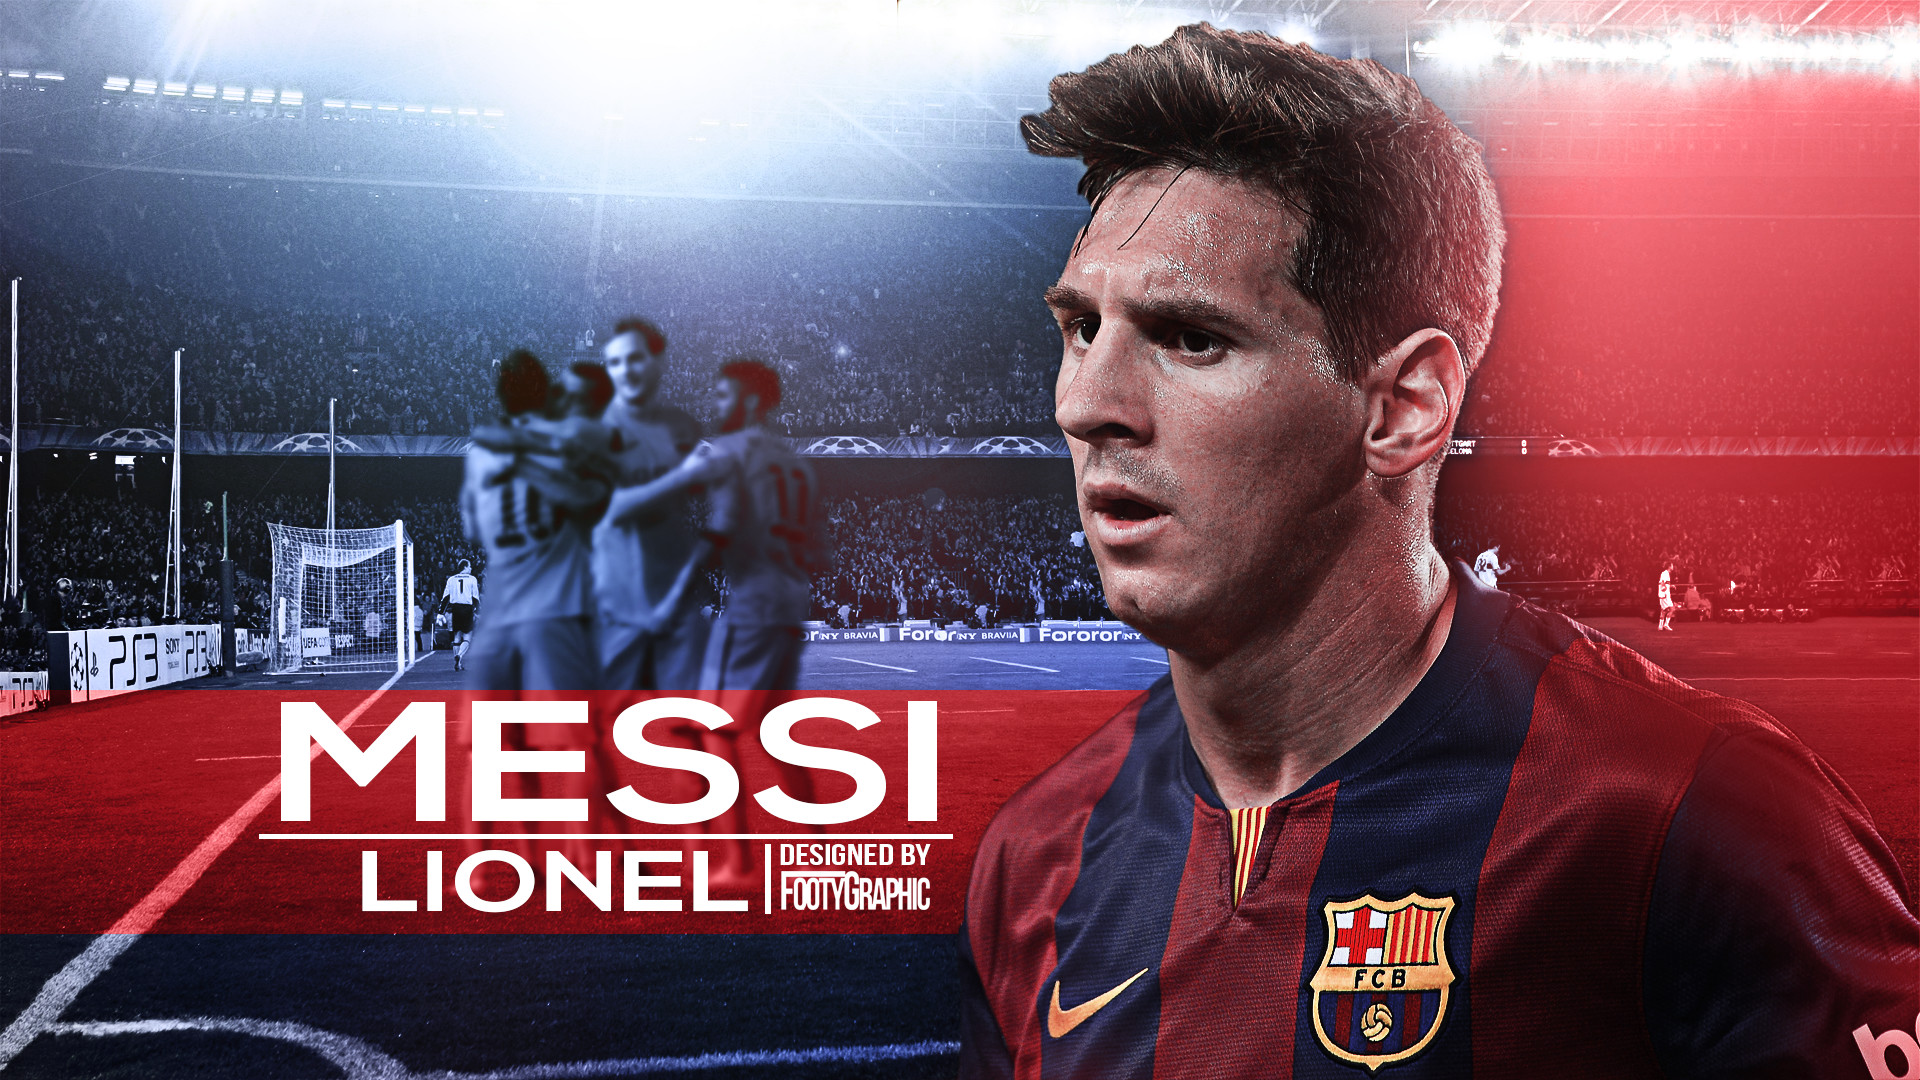 1920x1080 Lionel Messi Full HD Wallpaper